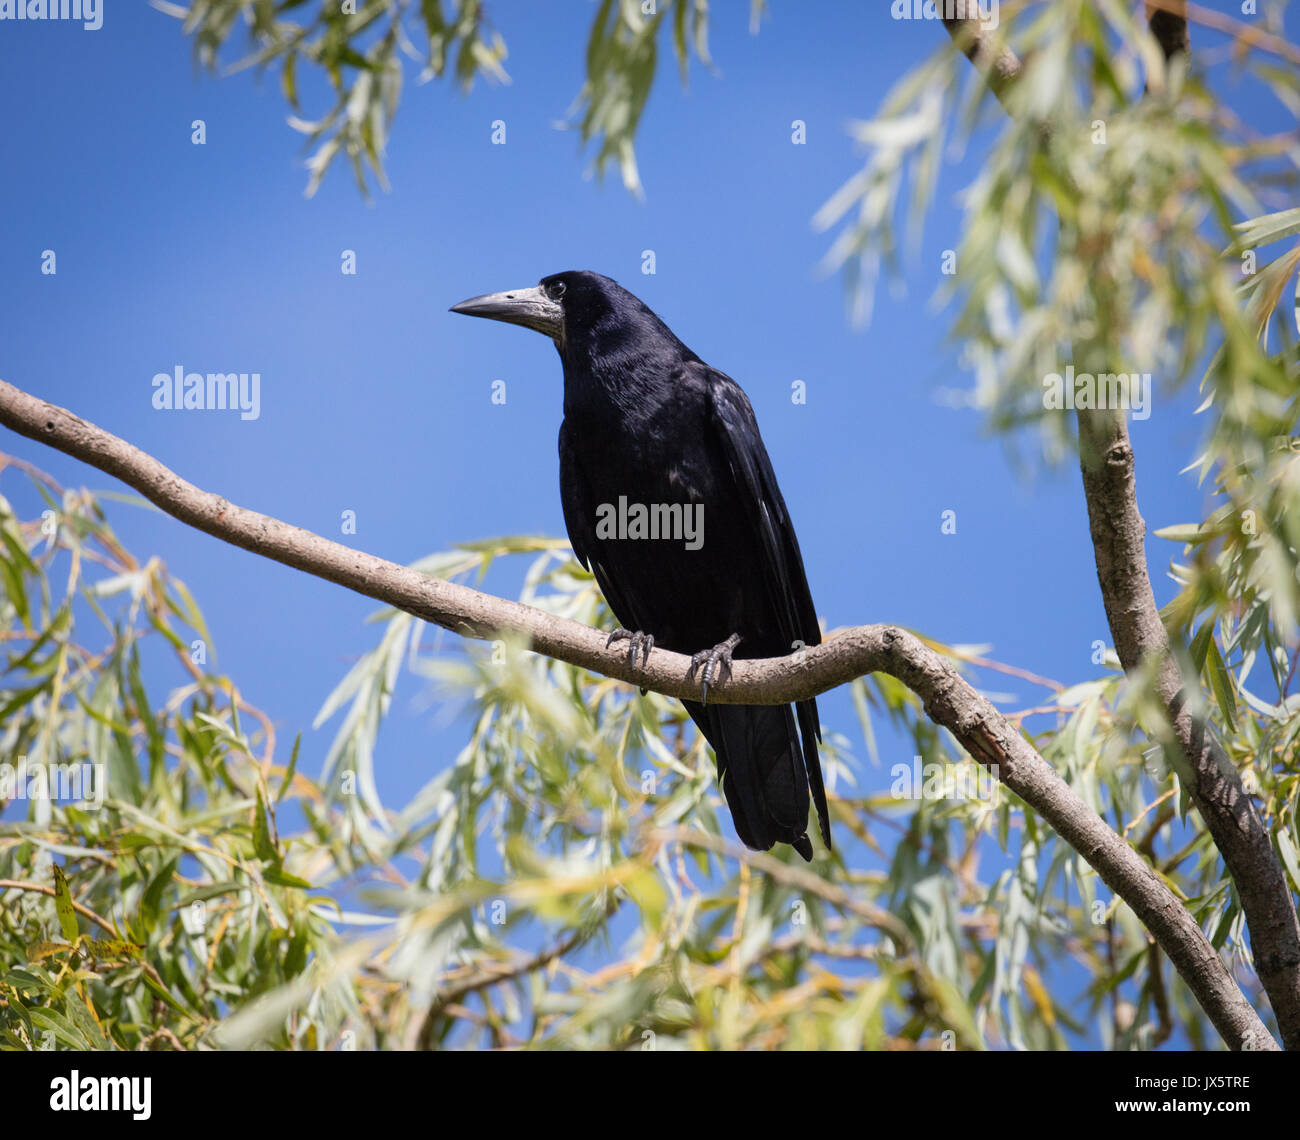 Rook Corvus frugilegus with glossy black plumage looking down from the branches of a willow tree in Gloucestershire UK - Stock Image